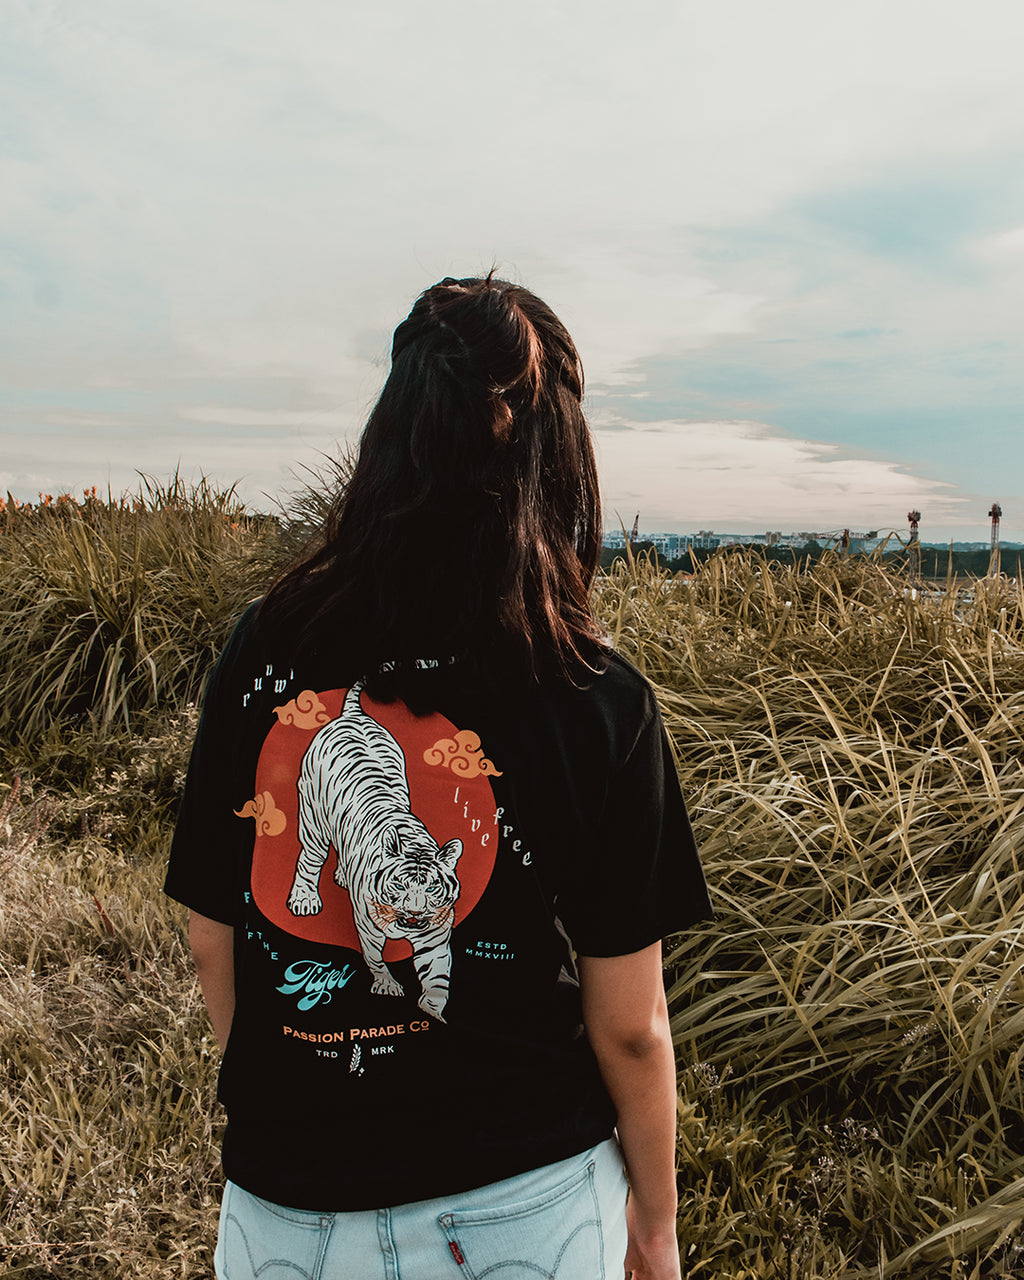 Run Wild, Live Free ✶ T-Shirt - Passion Parade Co.